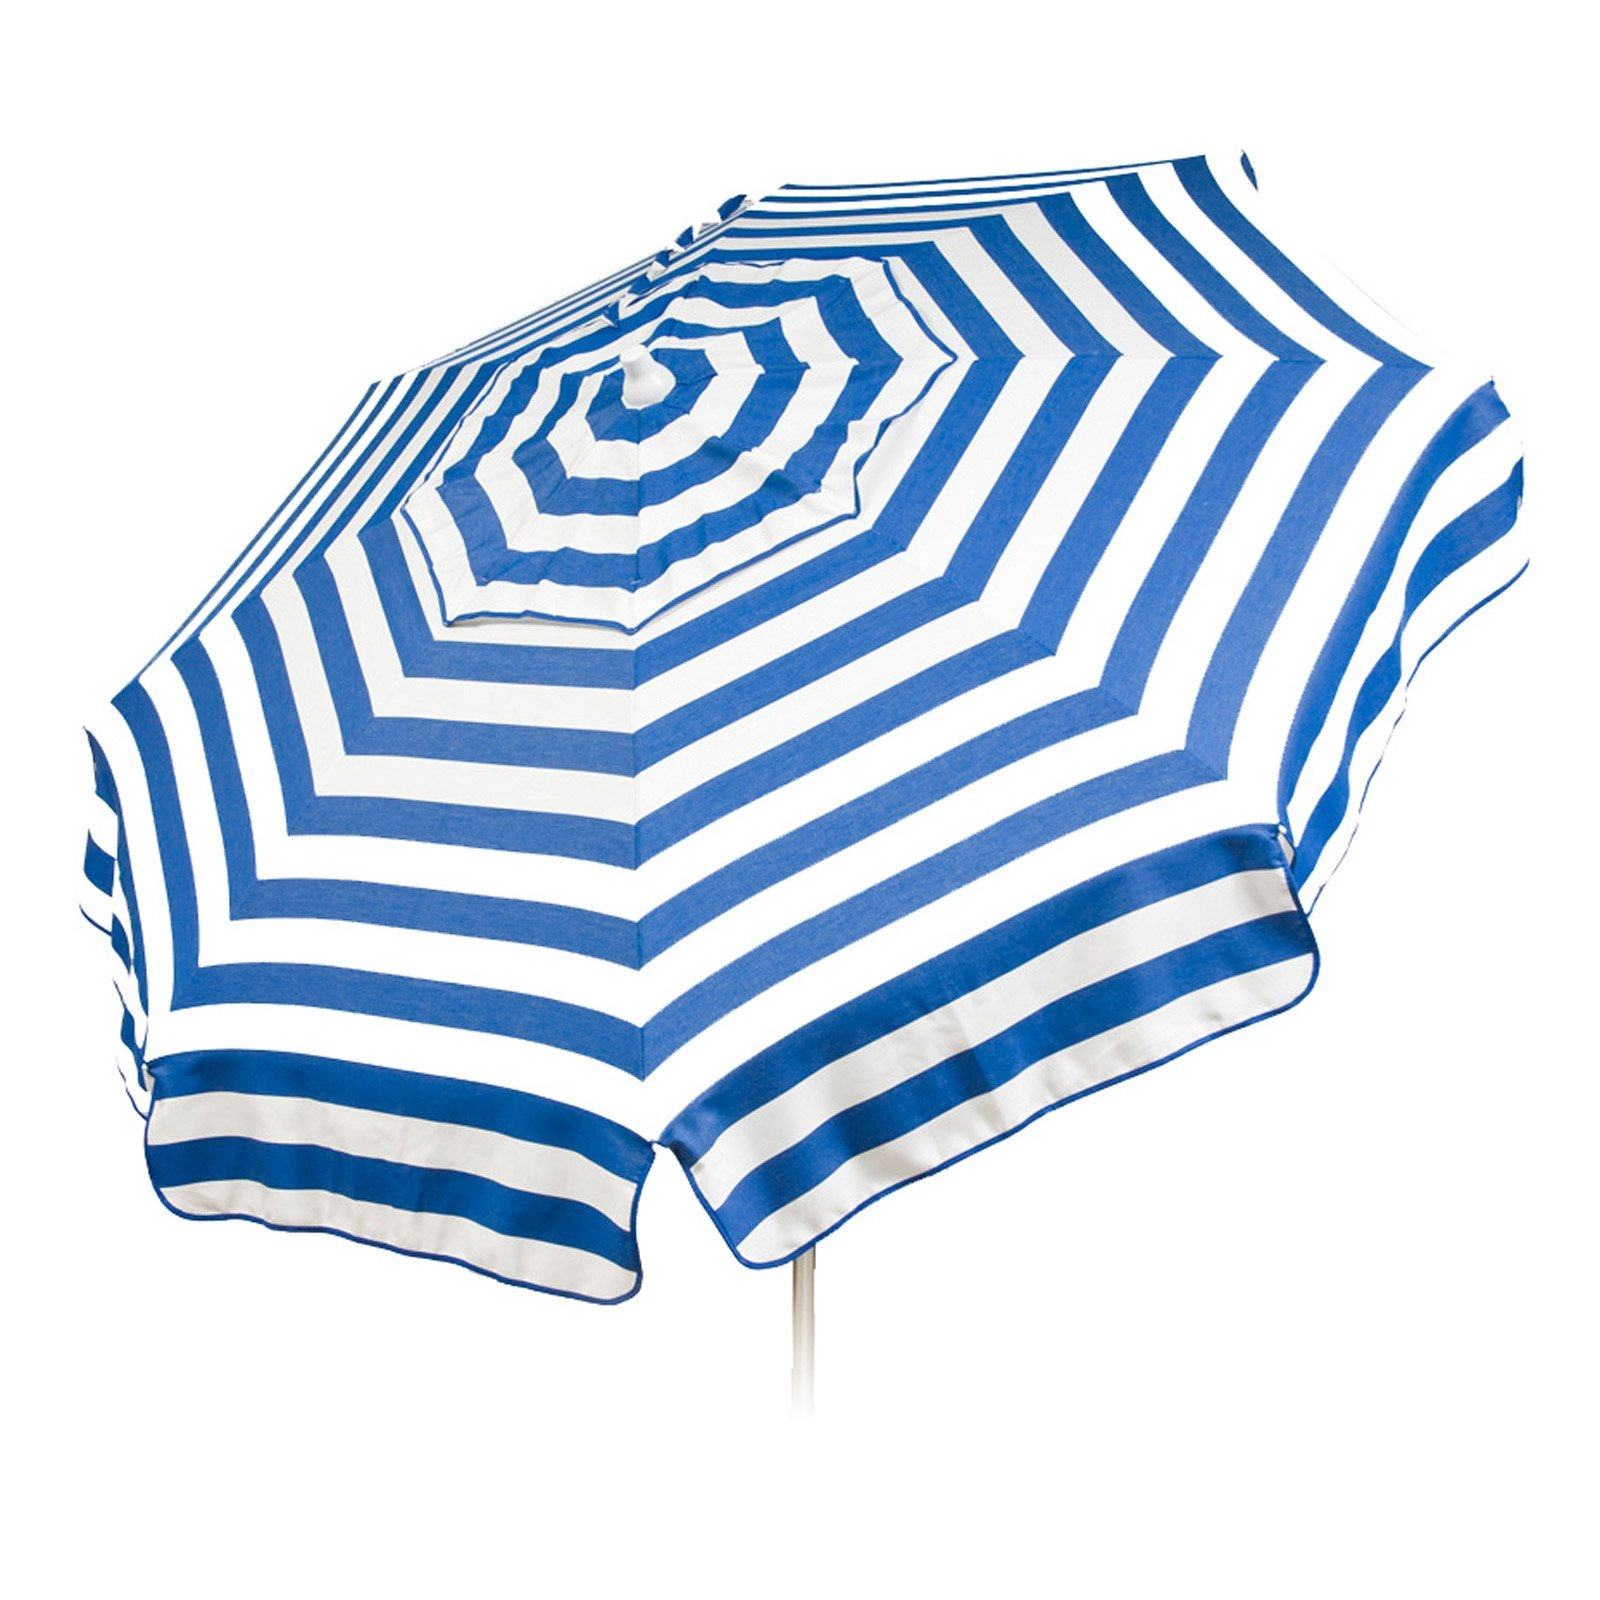 Italian 6 foot Push/Tilt Umbrella Acrylic Stripes Blue and White - Beach Pole